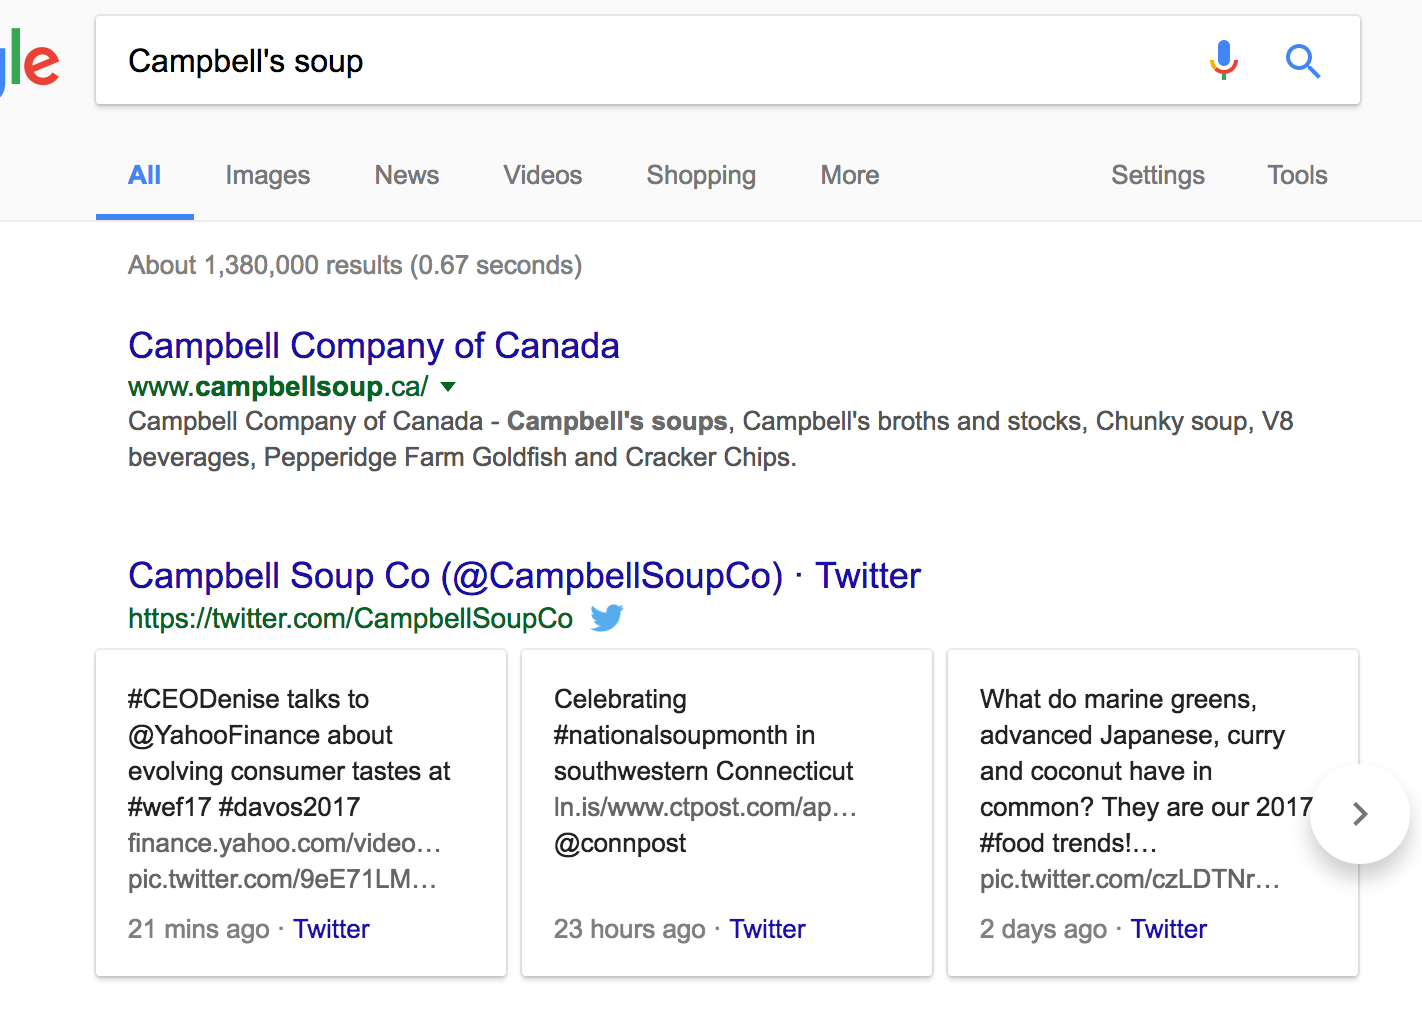 campbell's soup social media result page